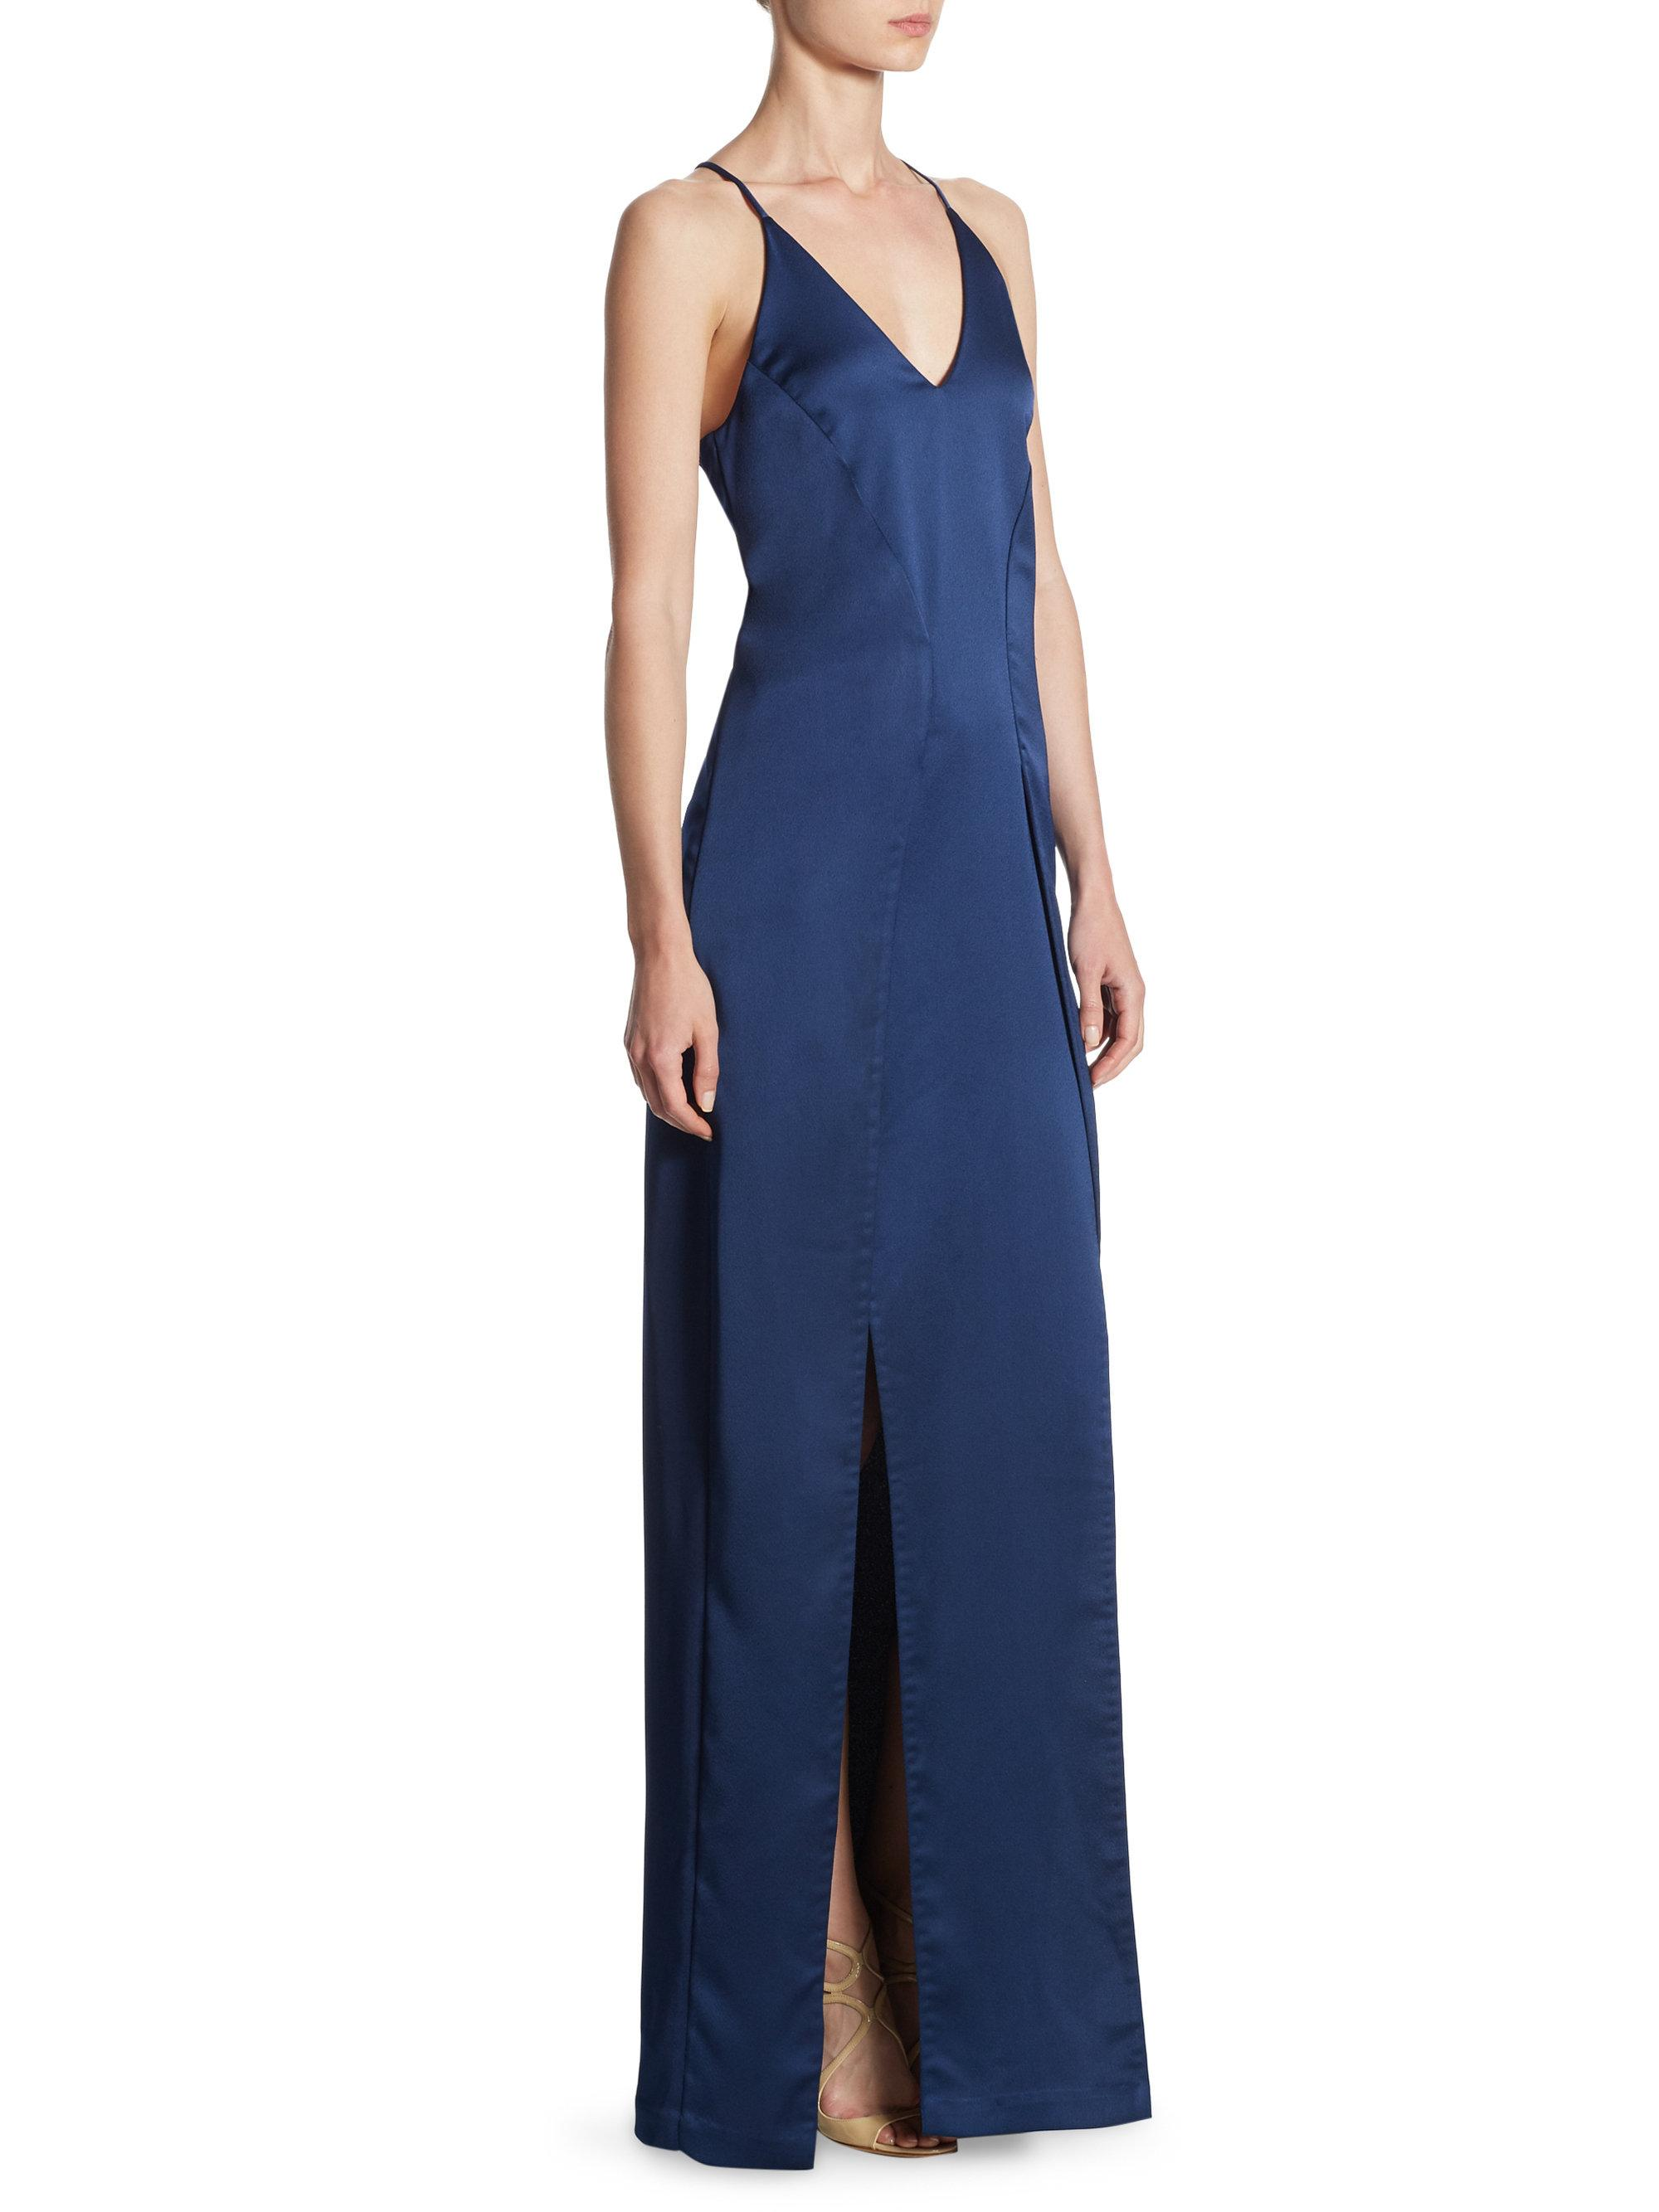 c5d81de64c03 Halston V-neck Satin Slip Gown in Blue - Lyst